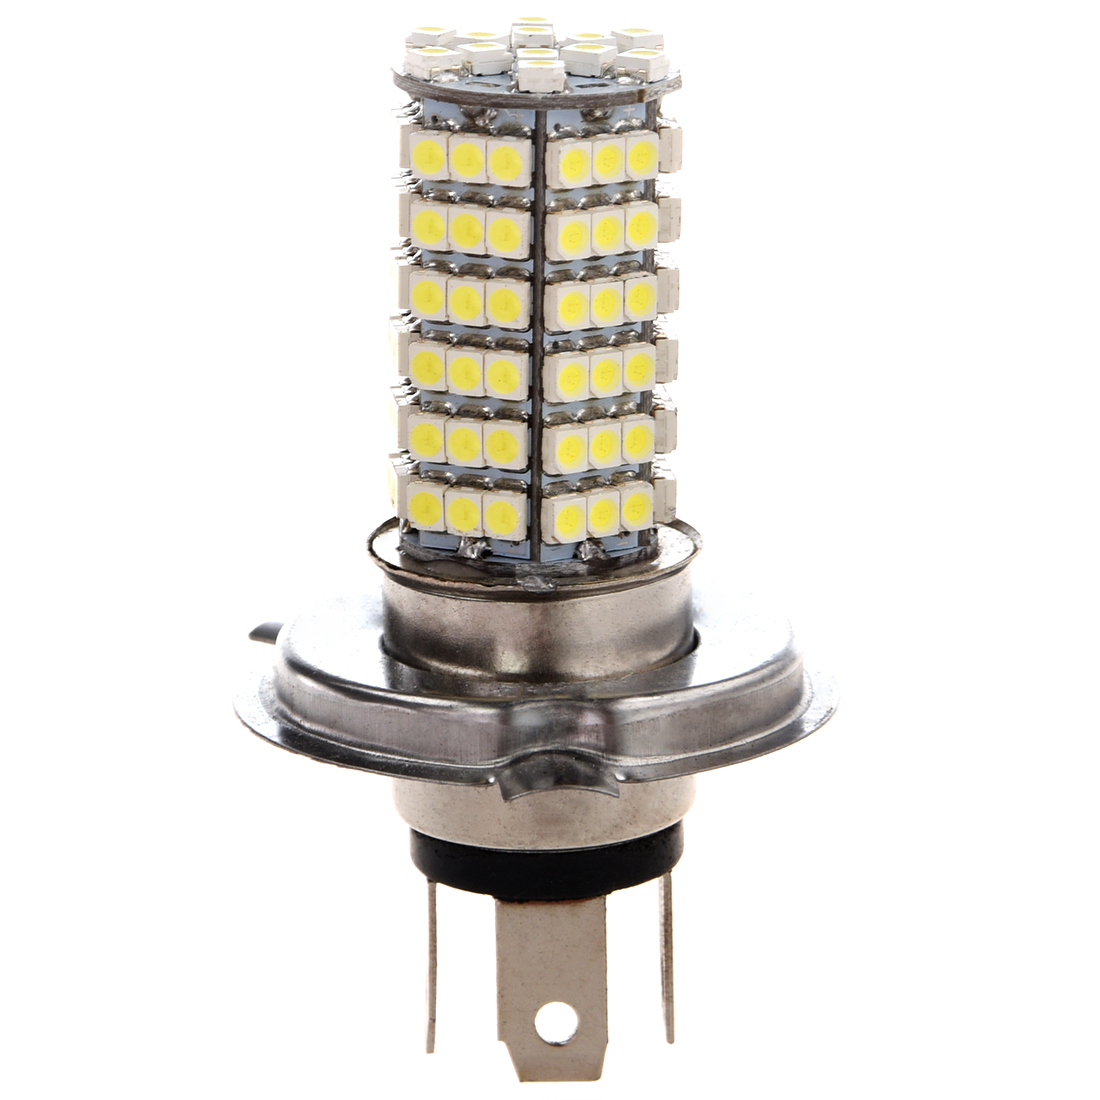 2 Car VEHICLE AUTO H4 120 SMD LED Light Bulb Lamp 12V